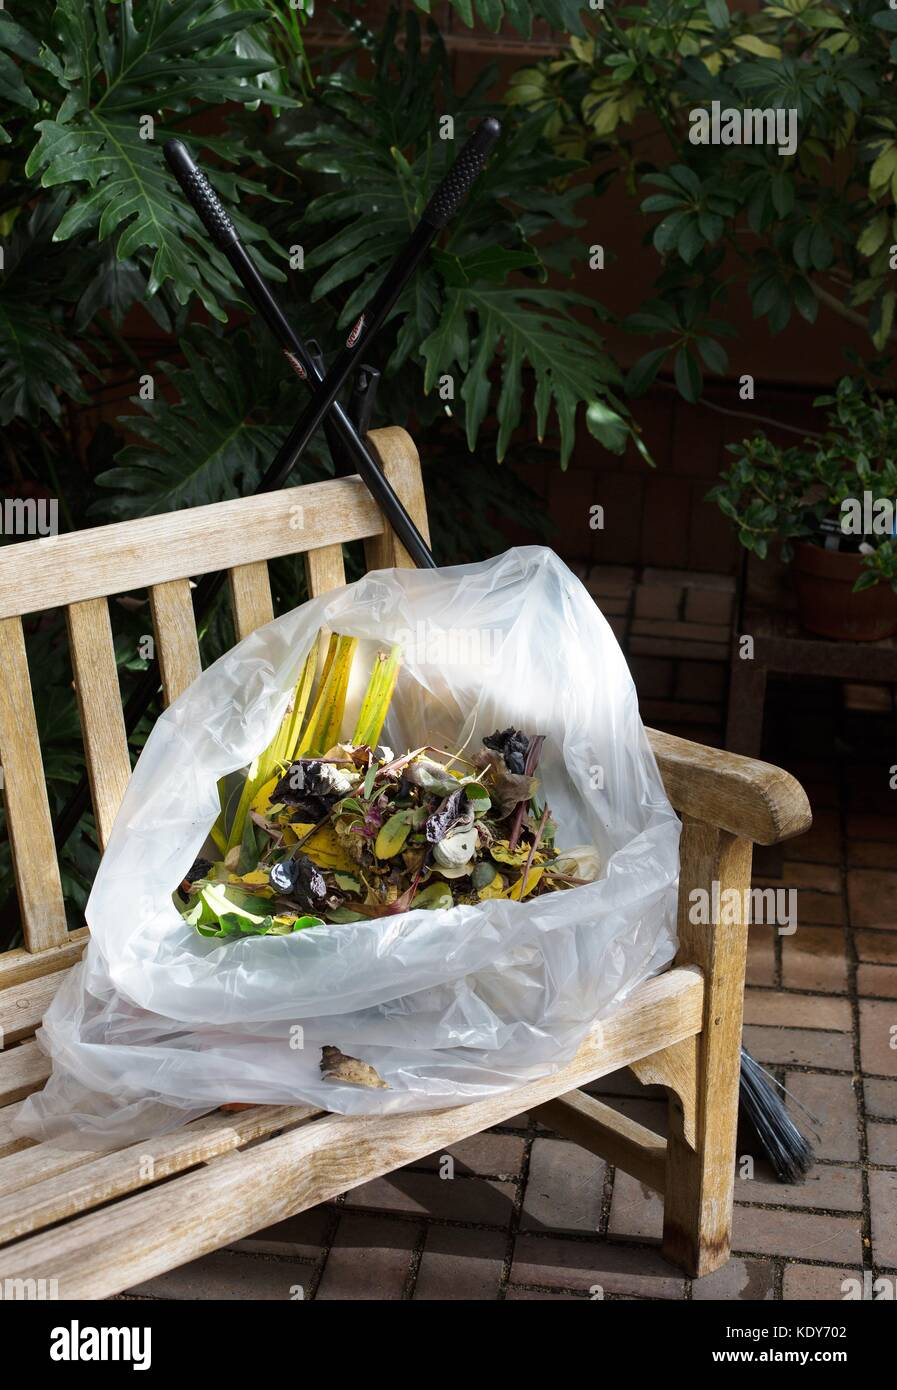 A bag of plant clippings in a greenhouse. - Stock Image